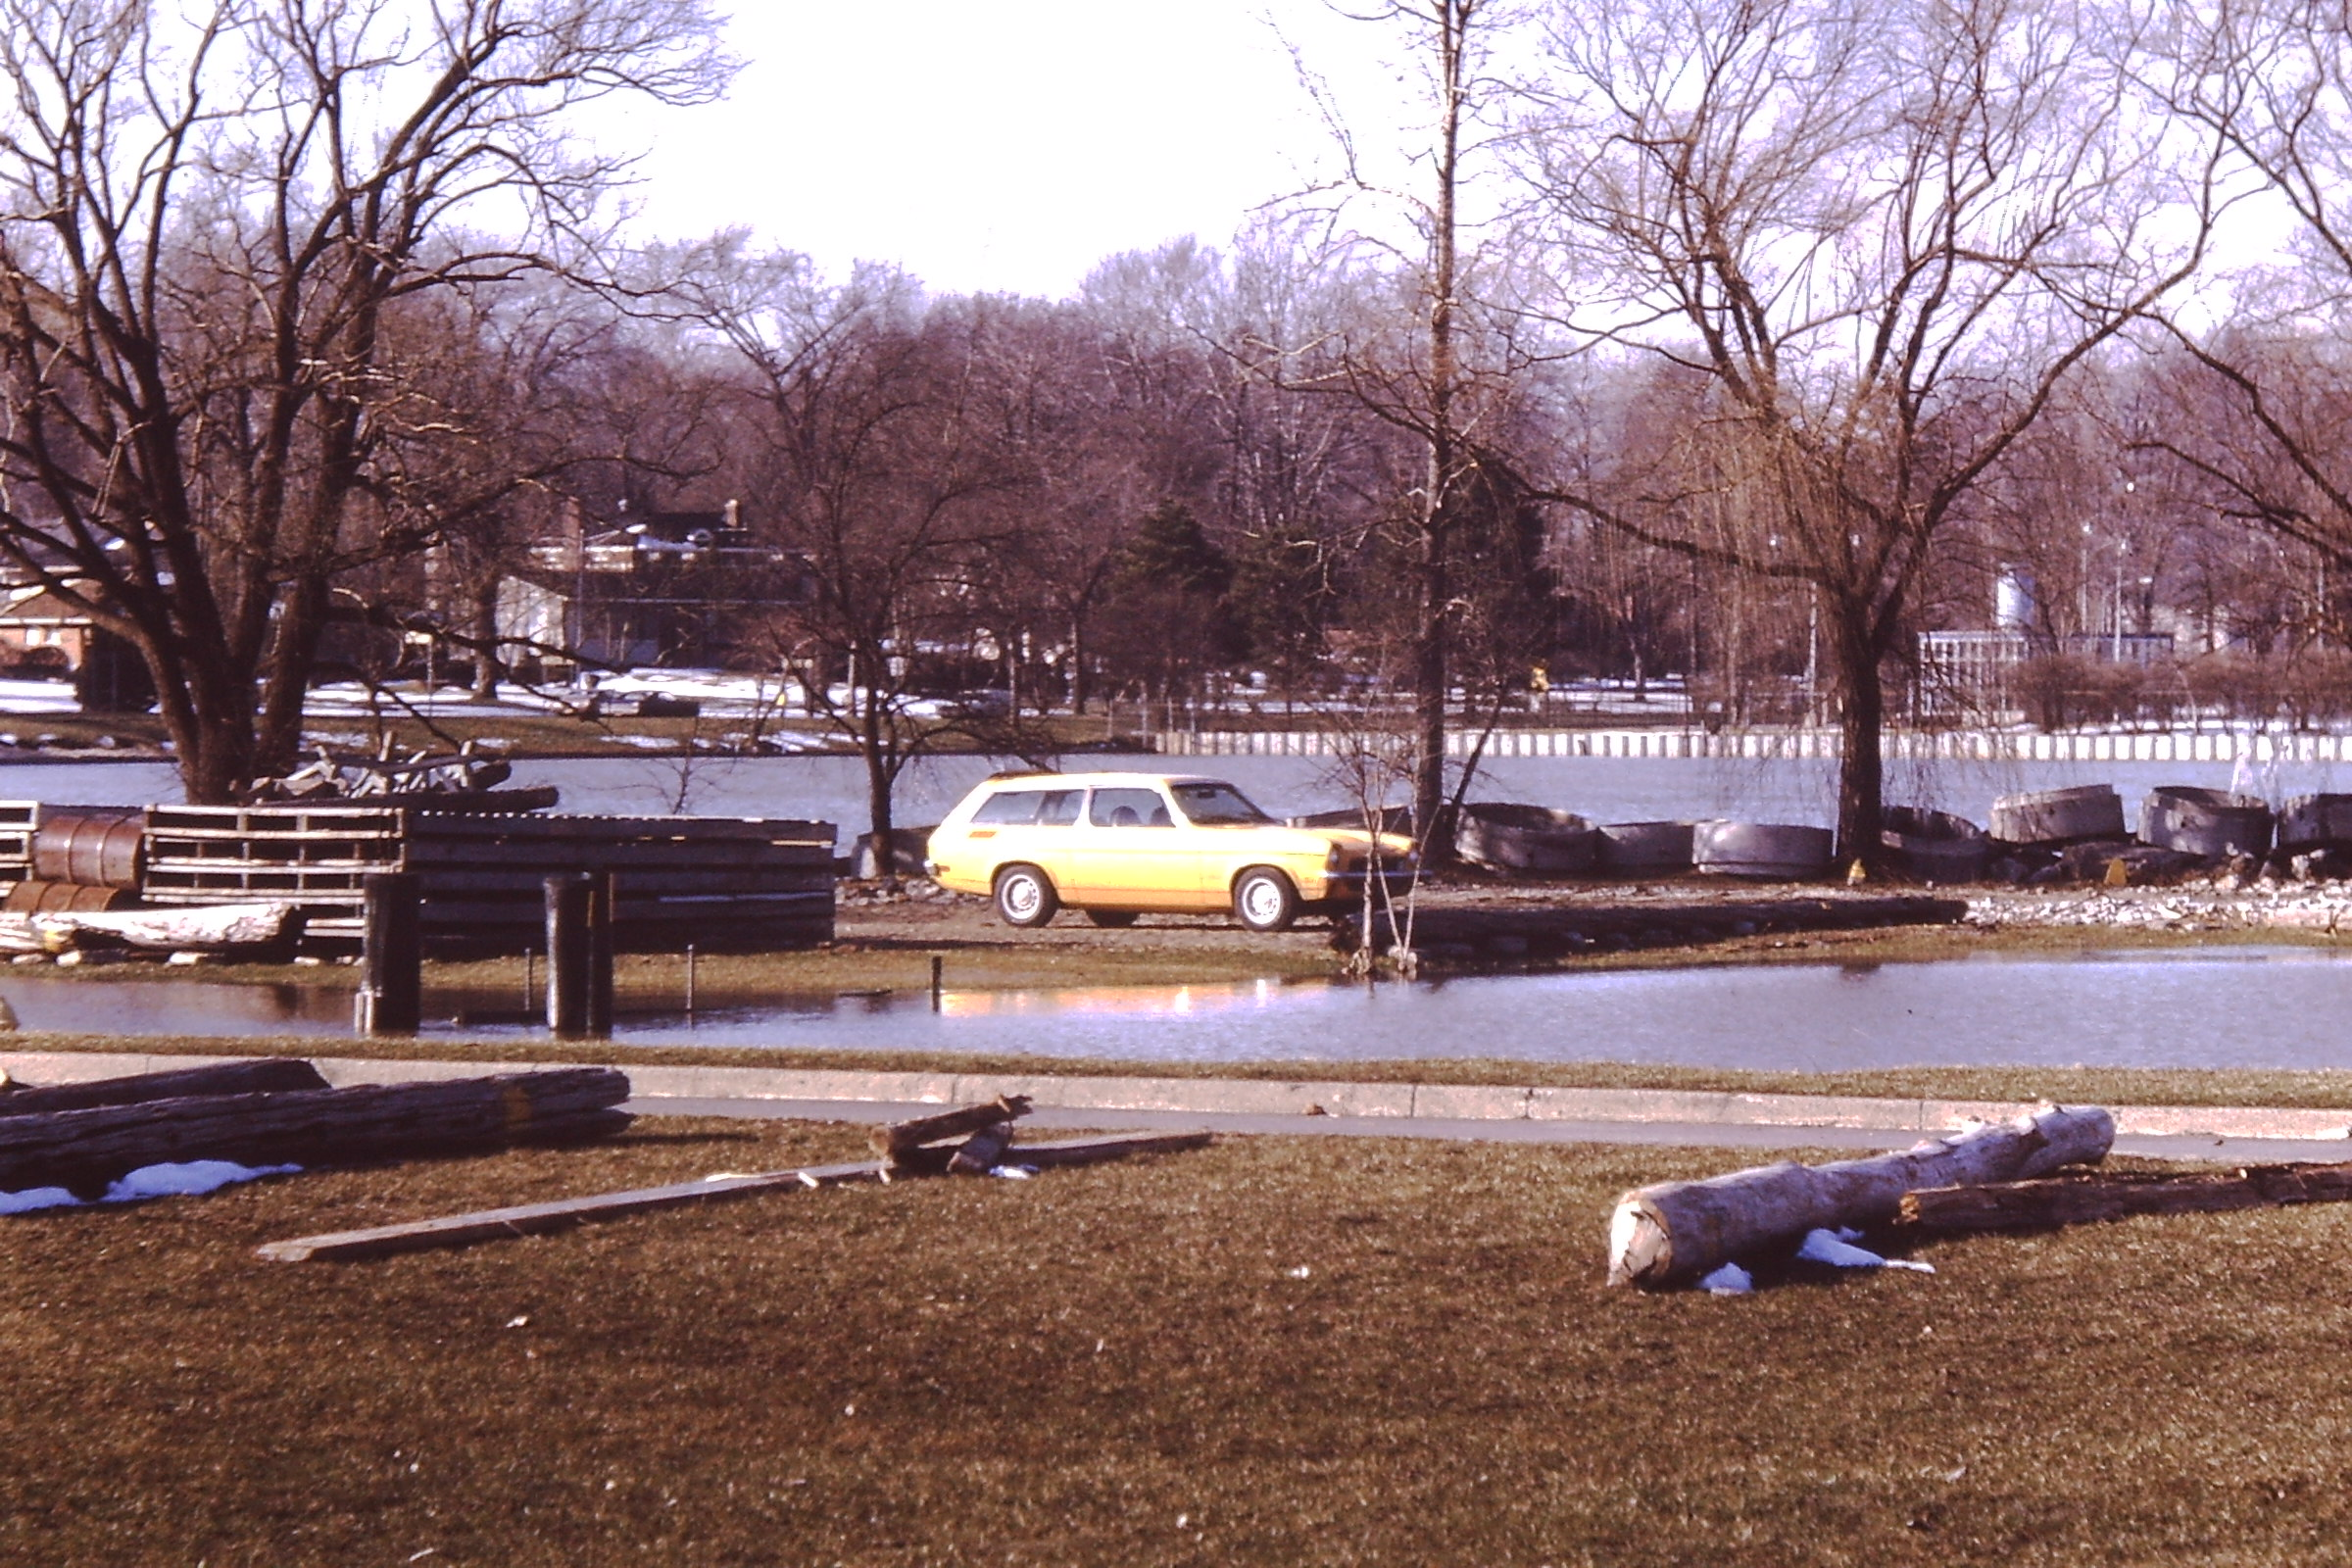 Jim Rusnack's 1973 Chevy Vega near flood